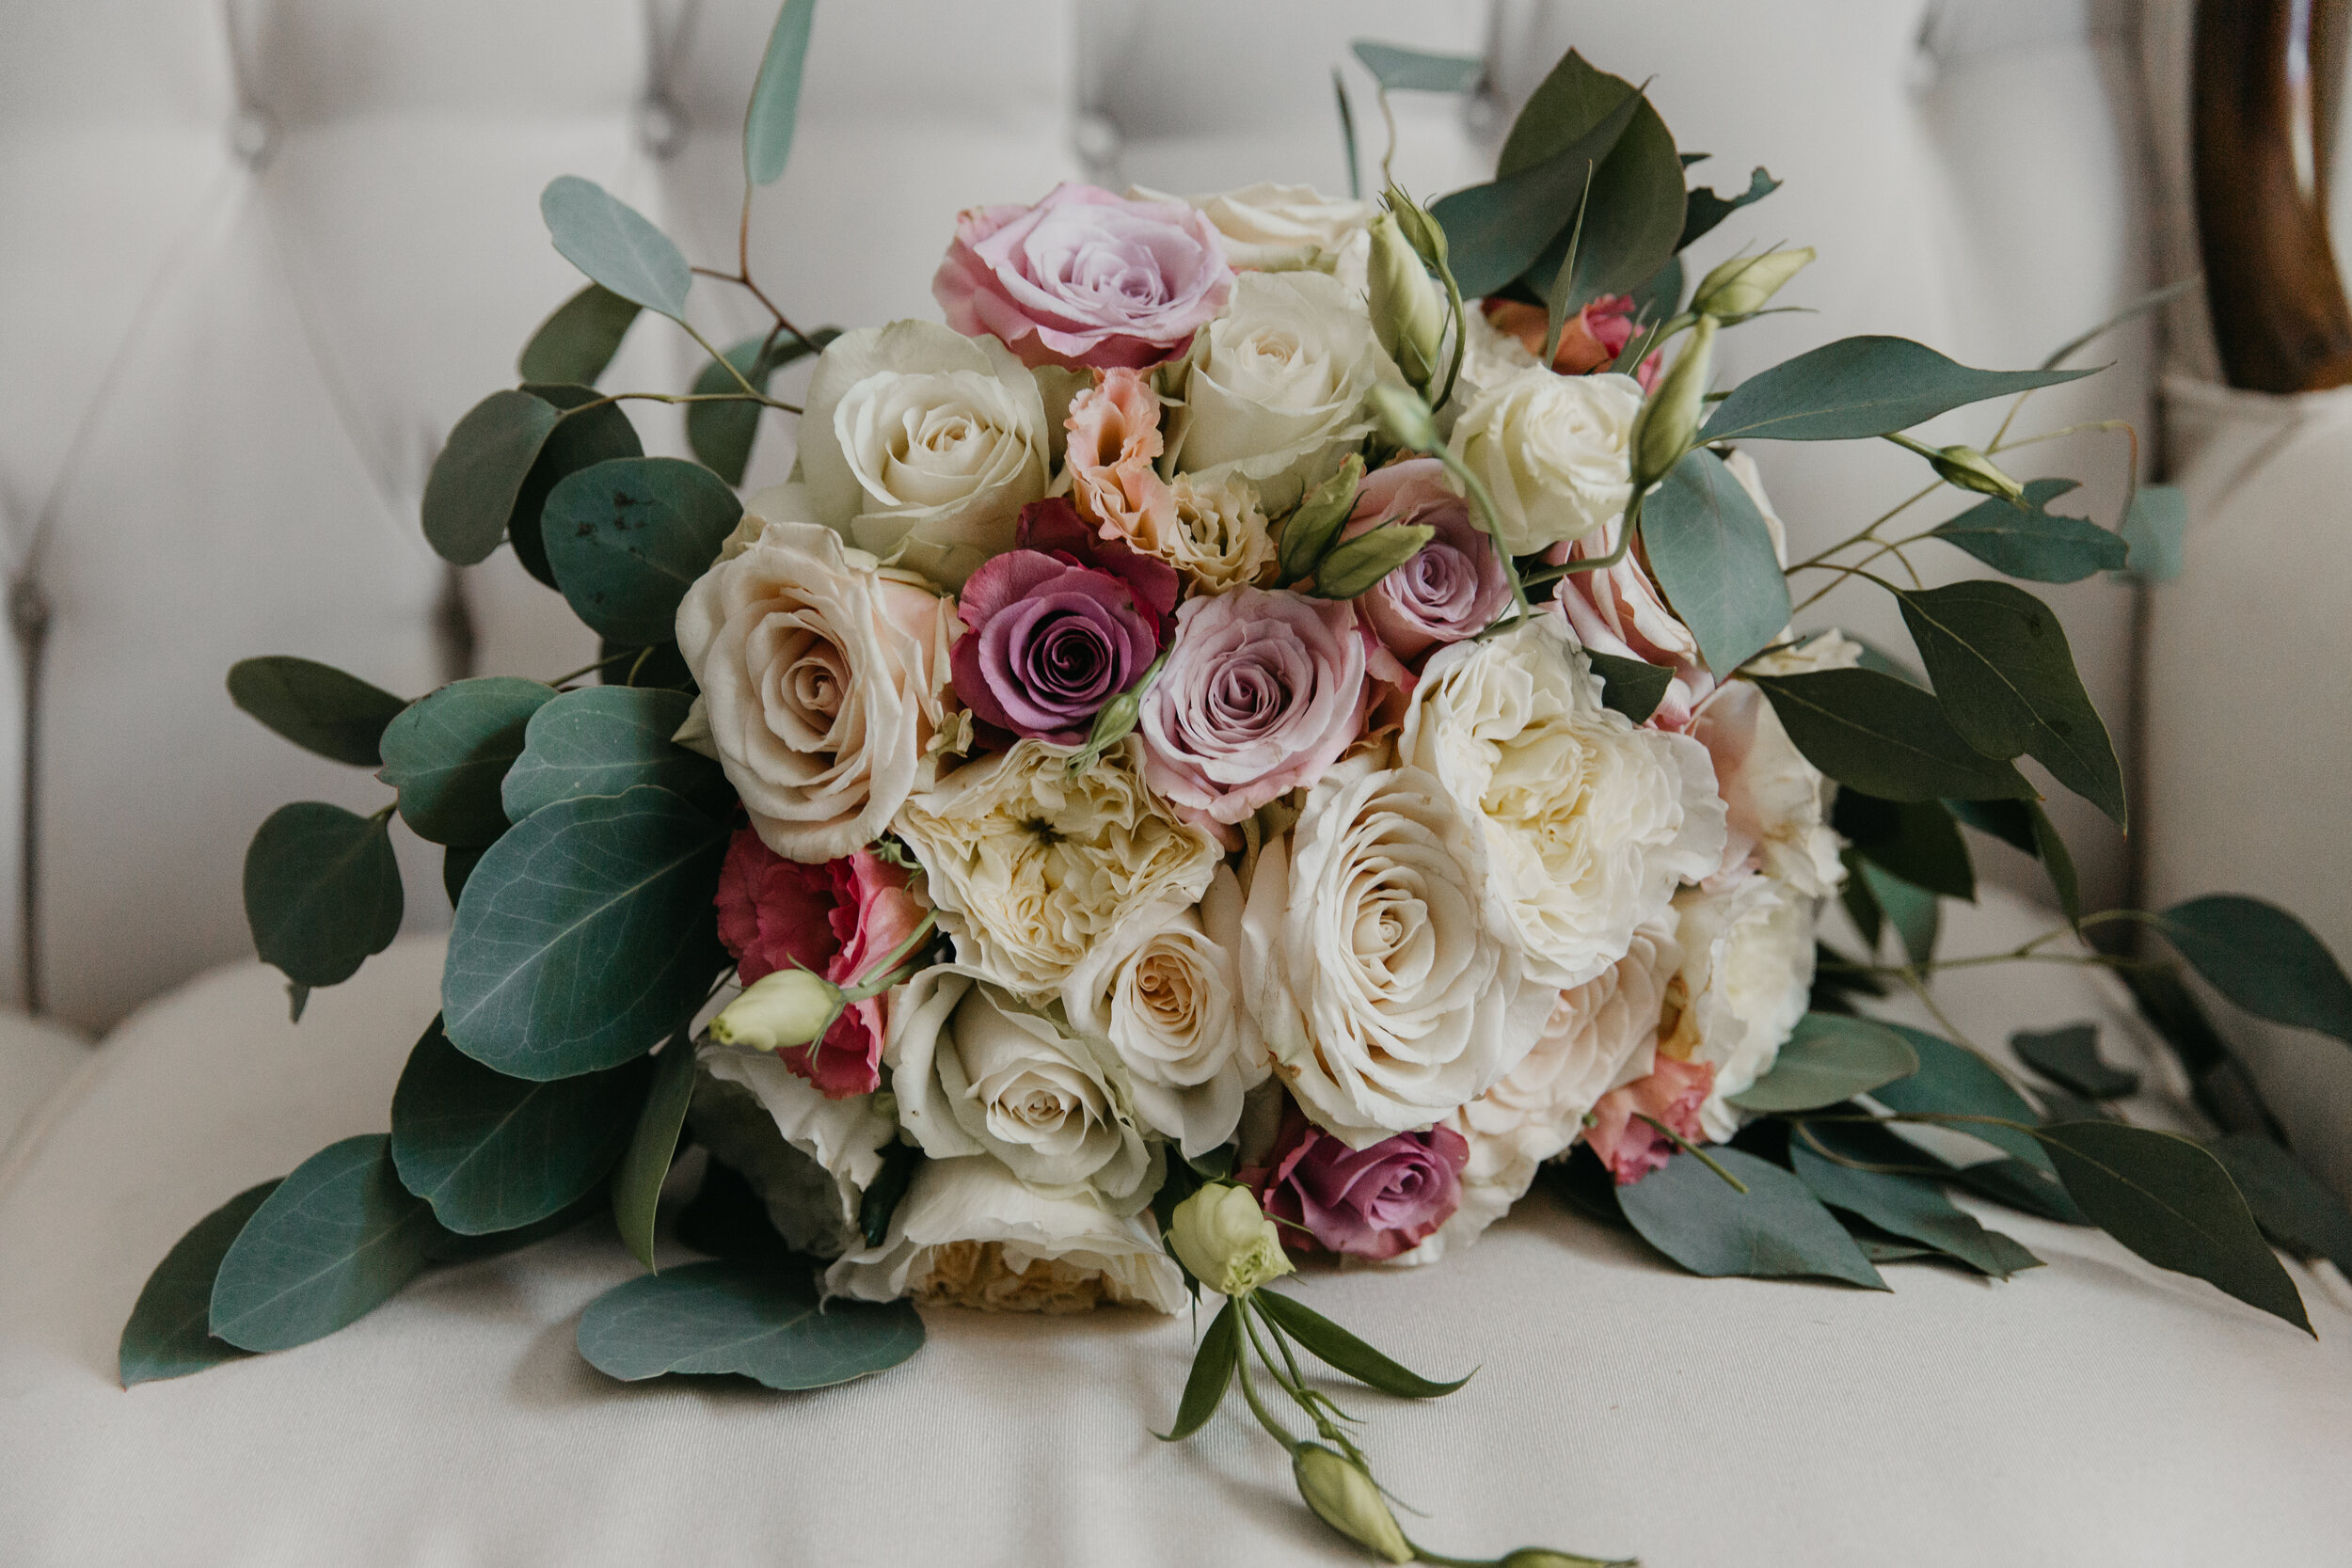 Mauve, blush and white English roses, ranunculus and lisianthus in a flowing eucalyptus bouquet